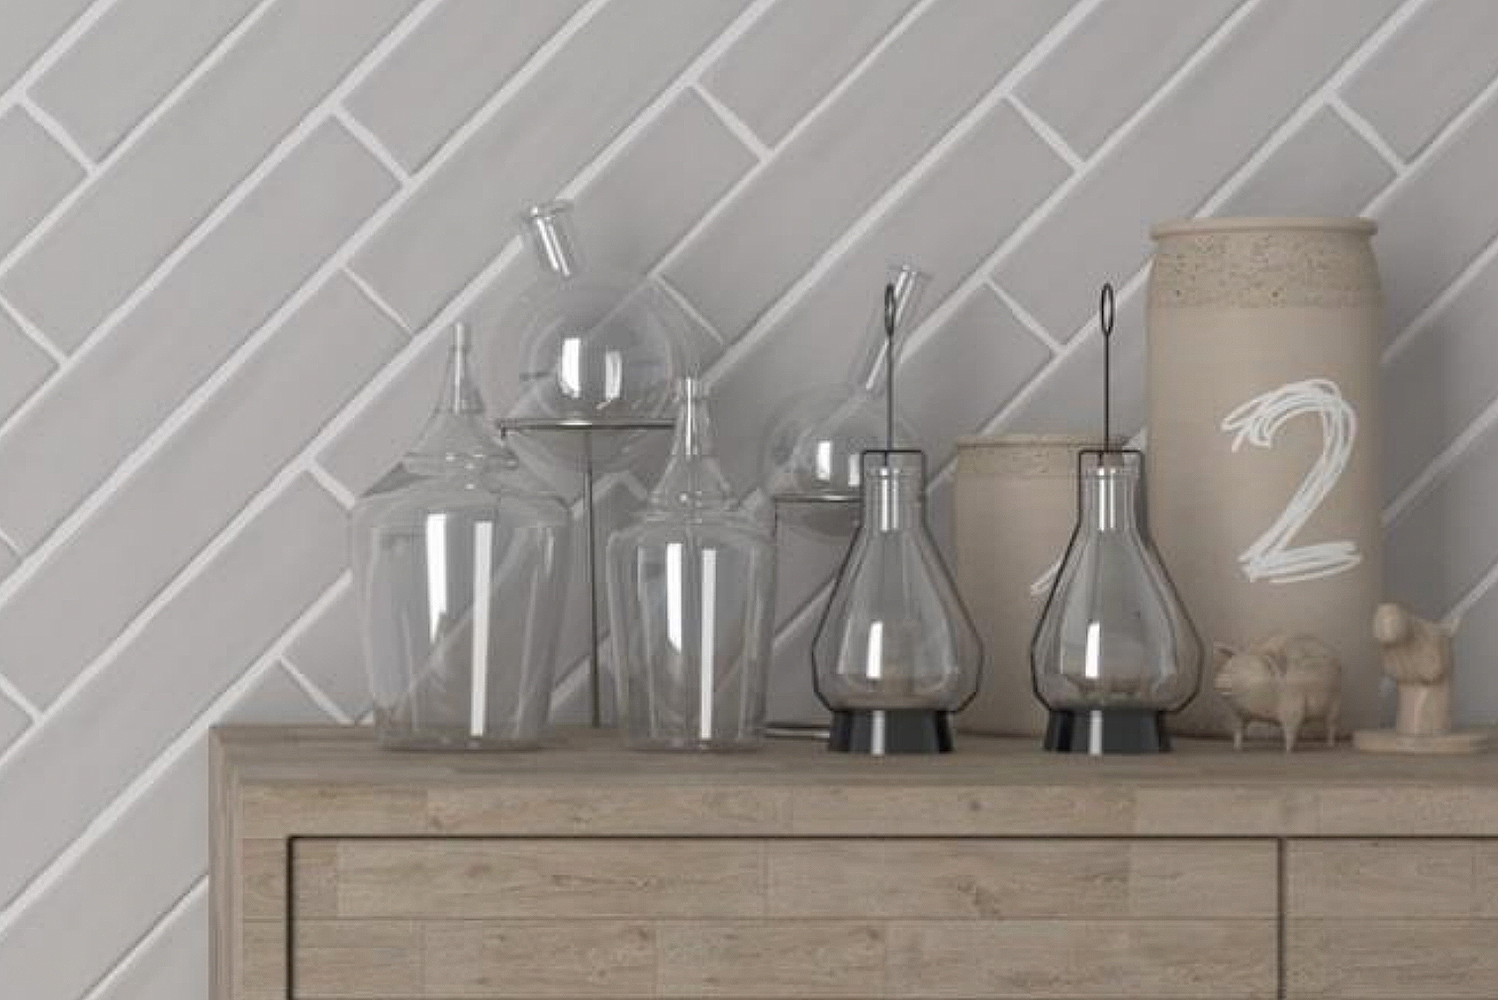 Hastings Tile & Bath launched a new collection from Spanish tile manufacturer Inedita.